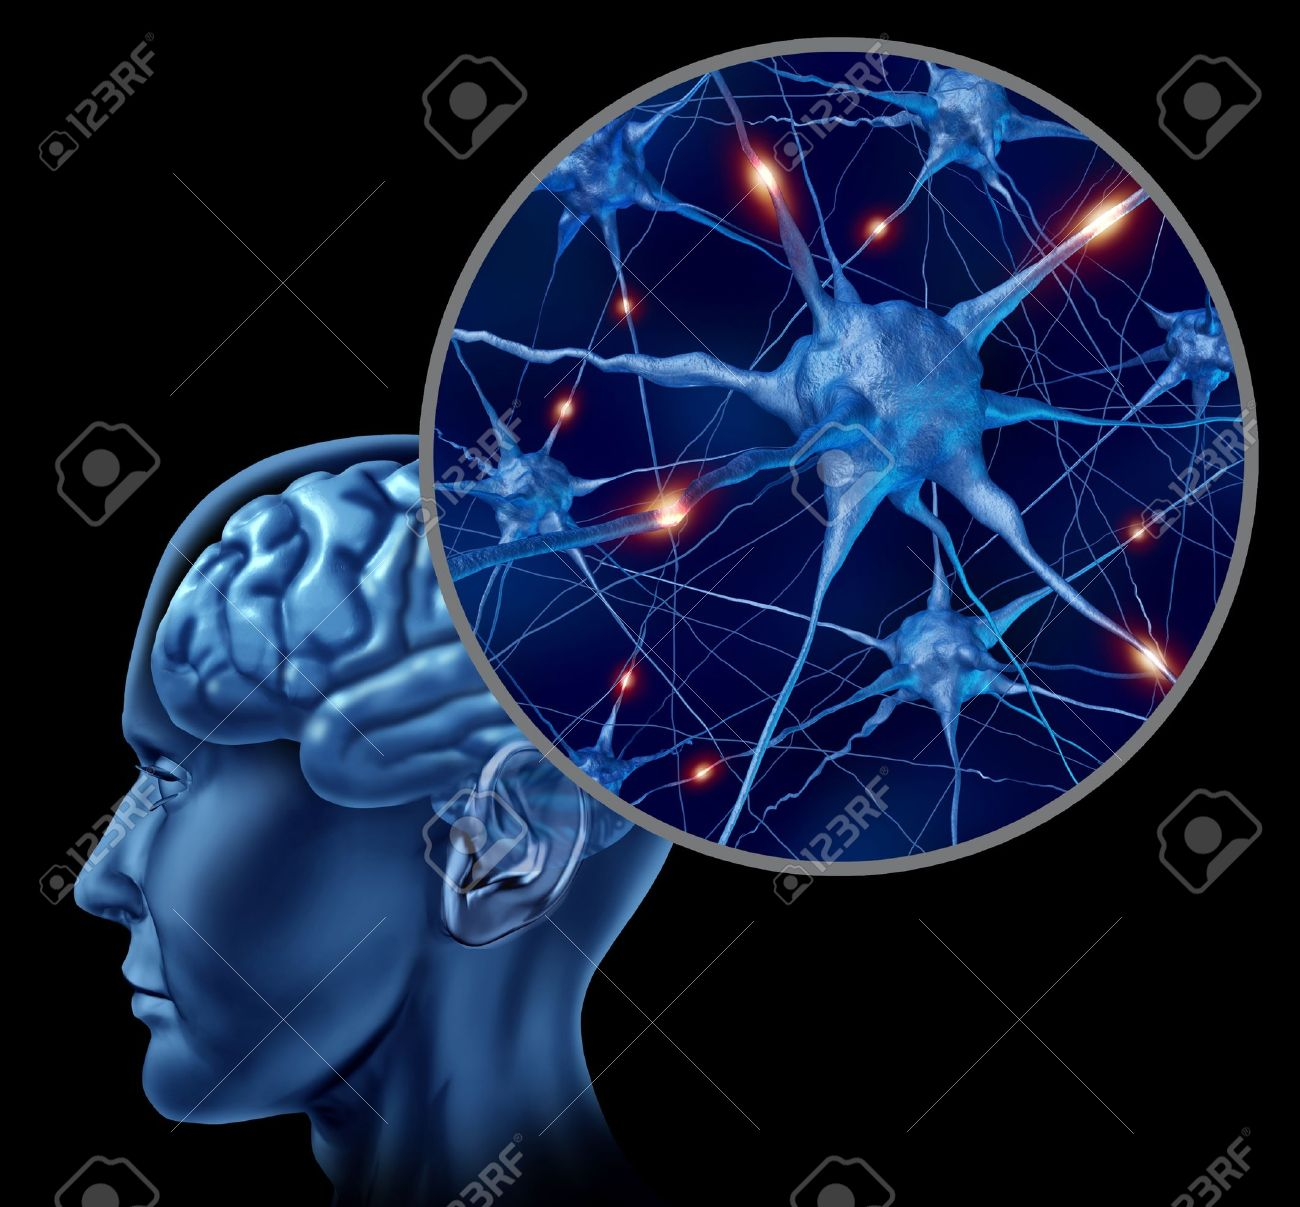 human brain medical symbol represented by a close up of neurons human brain medical symbol represented by a close up of neurons and organ cell activity showing